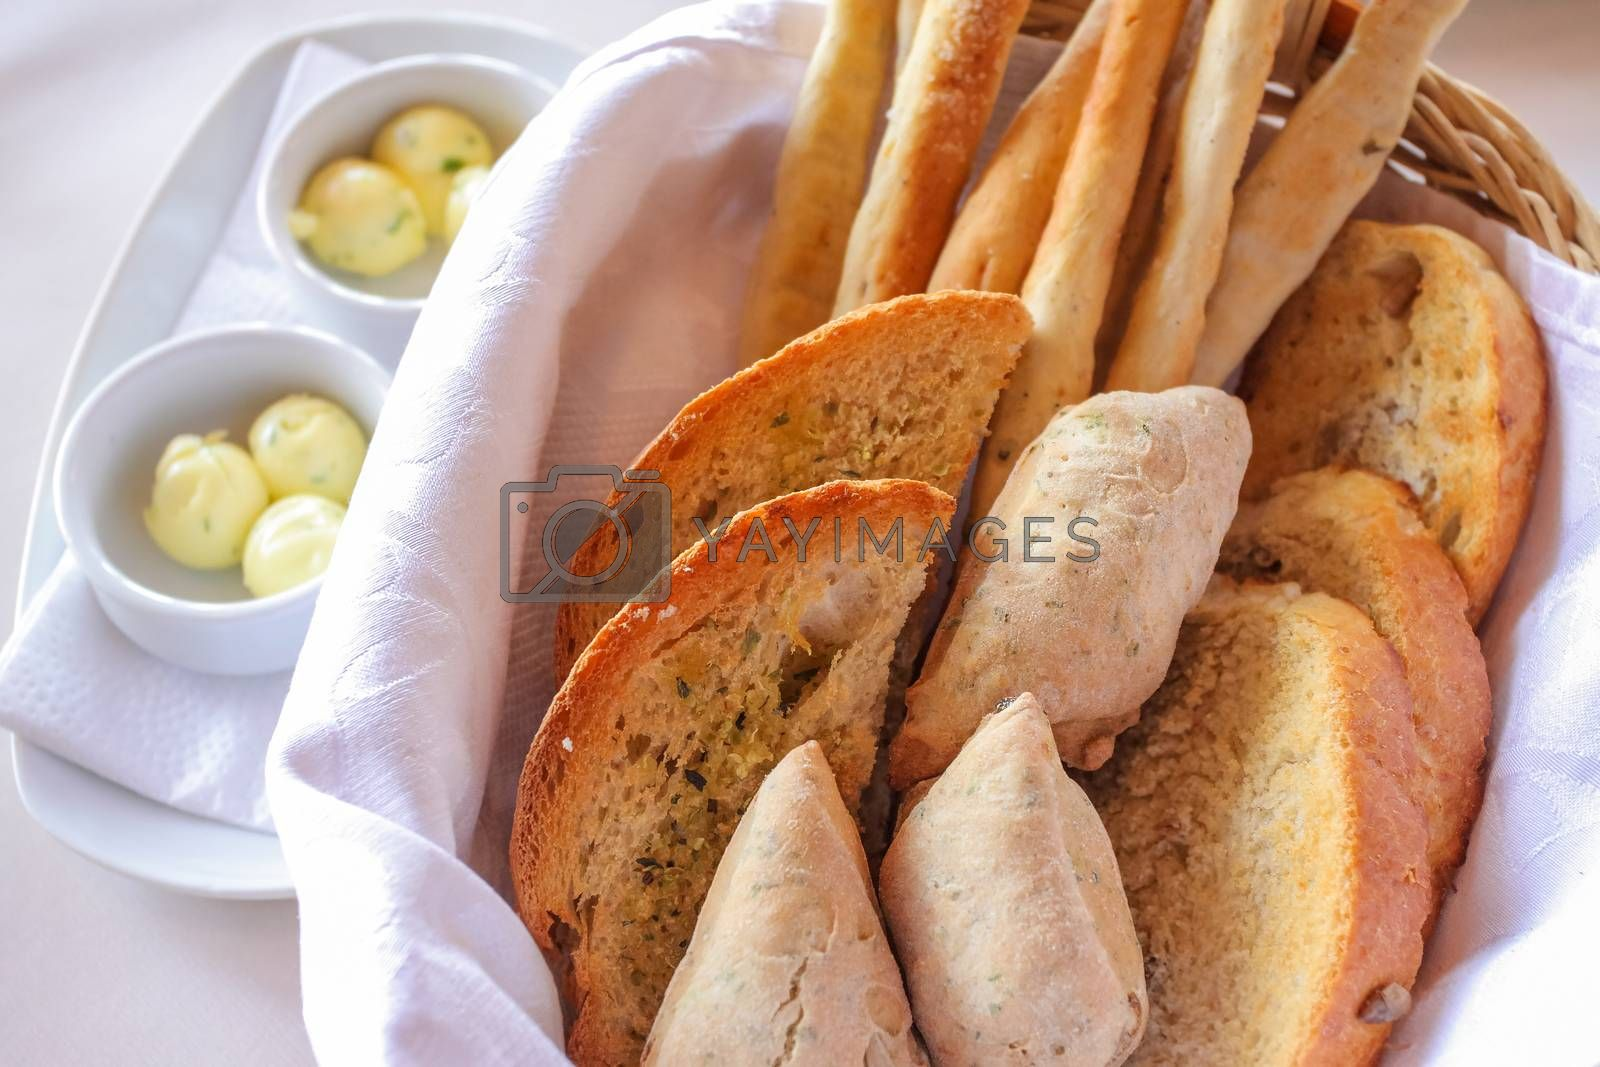 freshly backed various bread, tost, bagettes, served in a basket with white napkin.